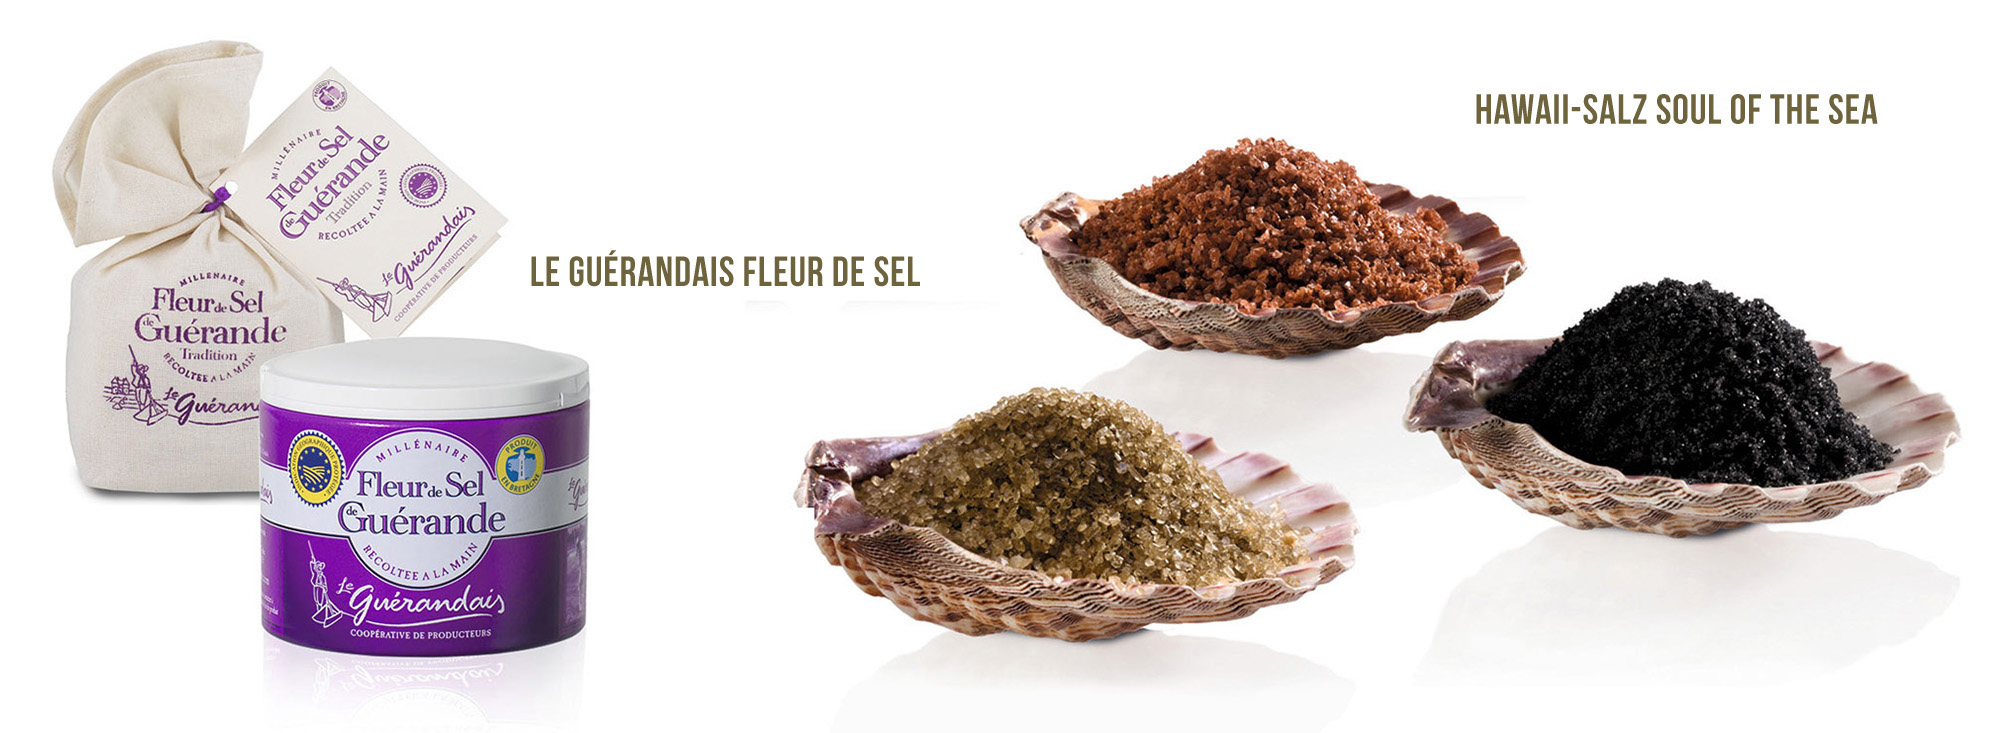 Le Guérandais Fleur de Sel / Hawaii-Salz Soul of the Sea